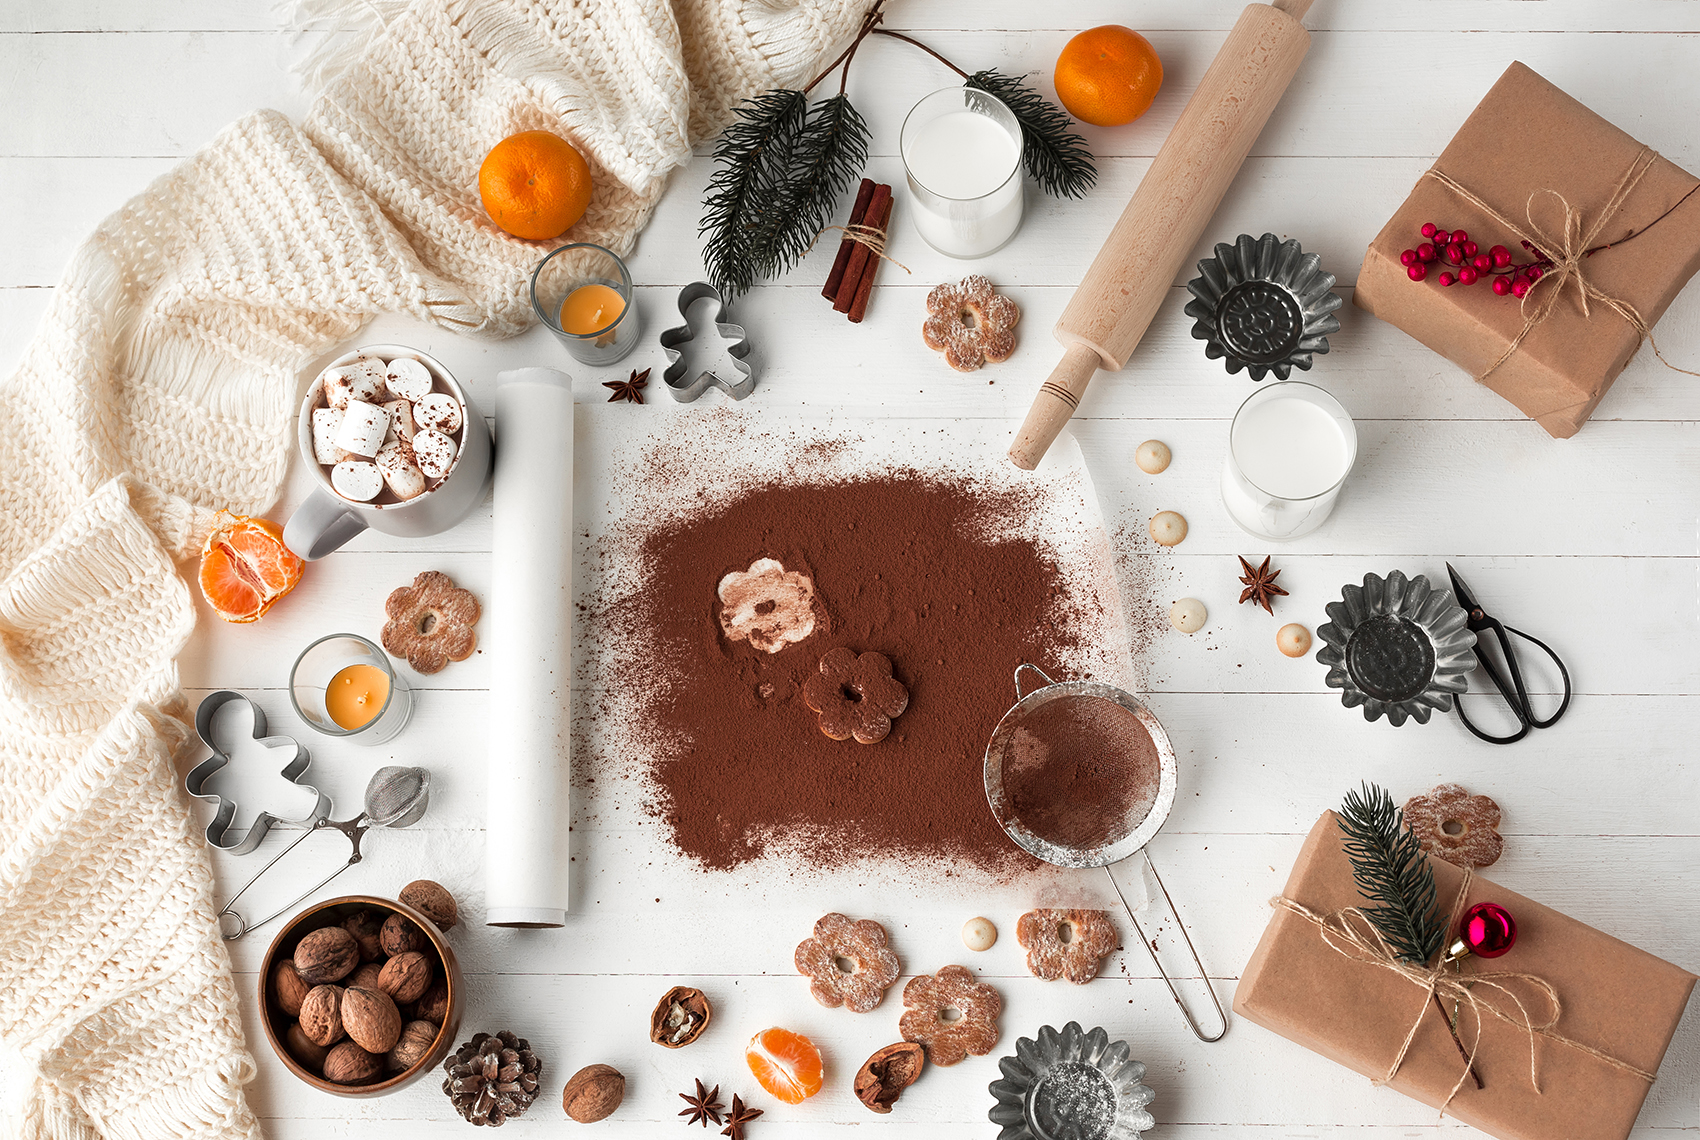 3 Healthy Holiday Treats to Bring Into The Office